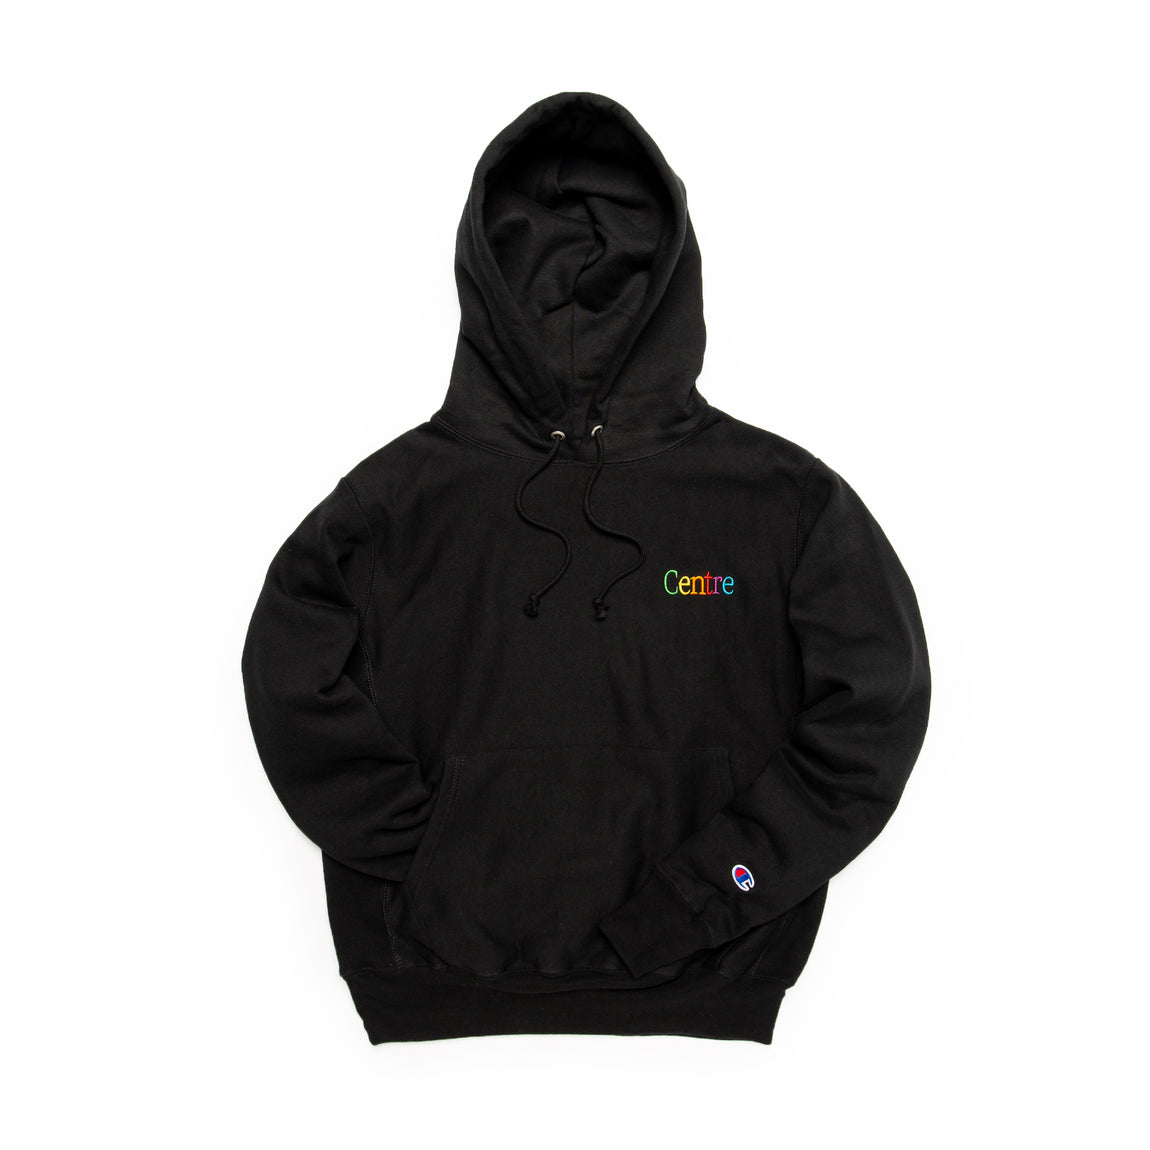 Centre Cyber Heavyweight Hoodie (Black) - Centre Cyber Heavyweight Hoodie (Black) -